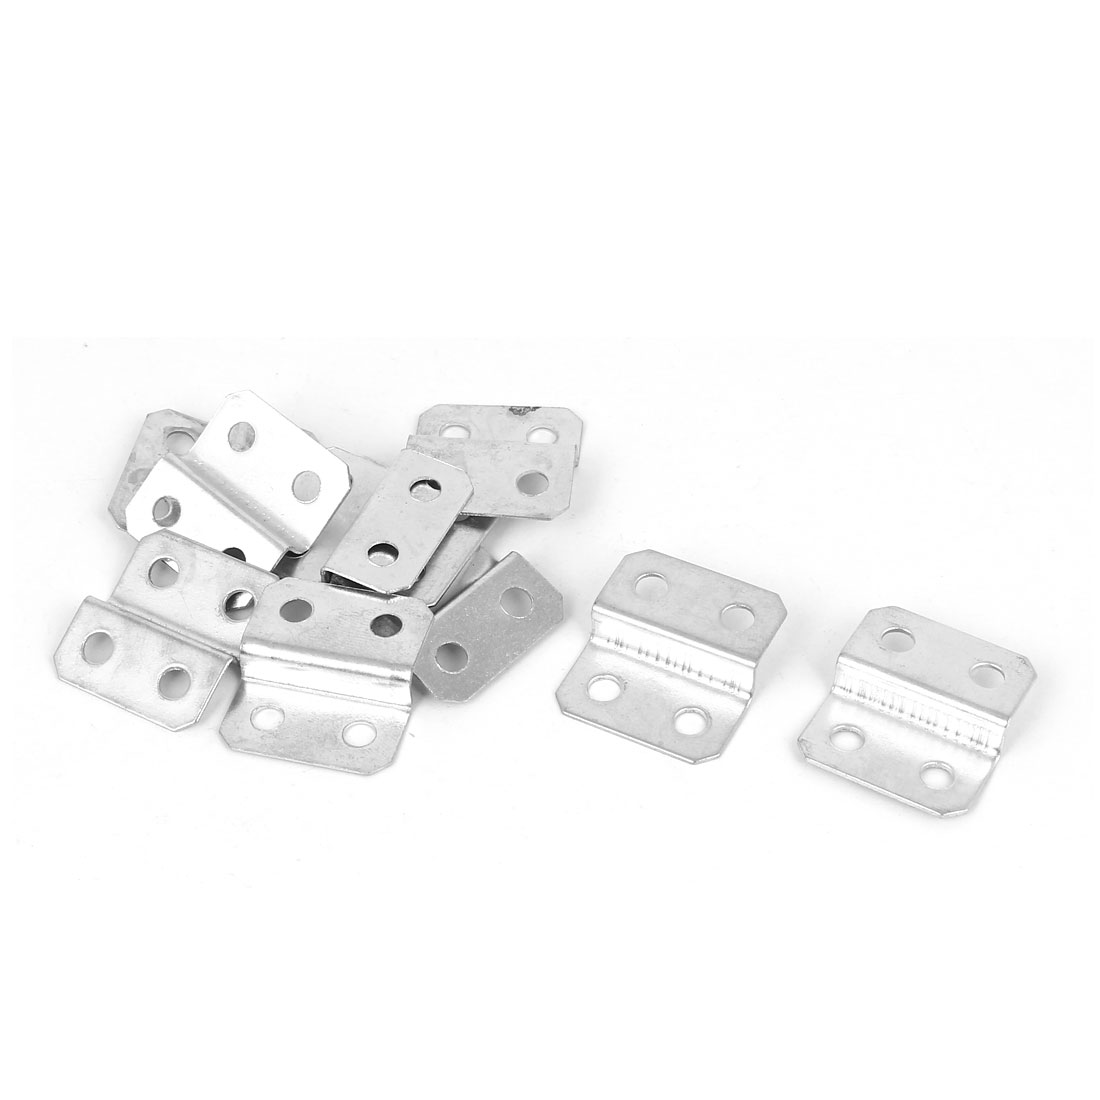 27mm x 25mm x 7mm Z Shape Photo Picture Frame Braces Brackets Silver Tone 10PCS